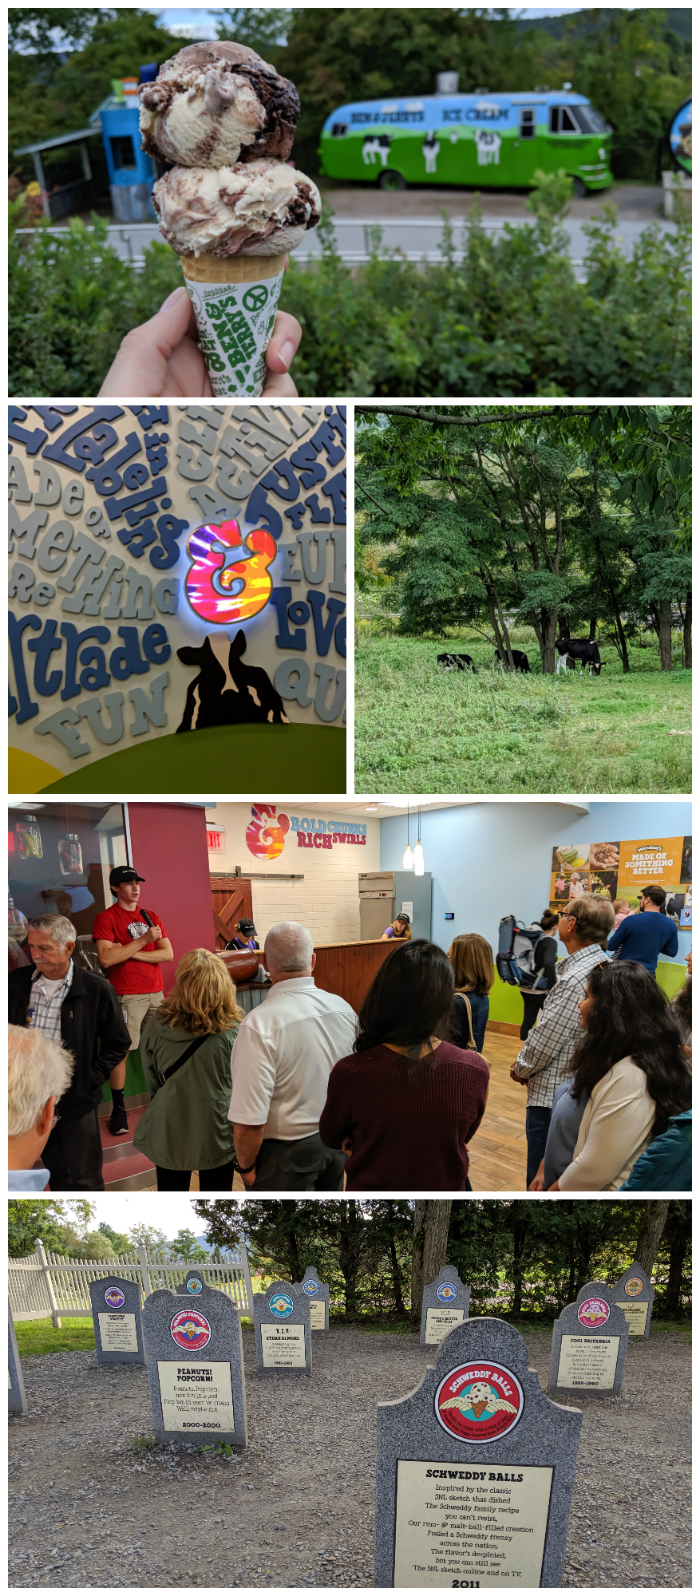 Ice cream factory tour at Ben & Jerry's   11 Ways to Fill Your Days During a Weekend in Vermont   #vermont #burlington #newengland #benandjerrys #icecream